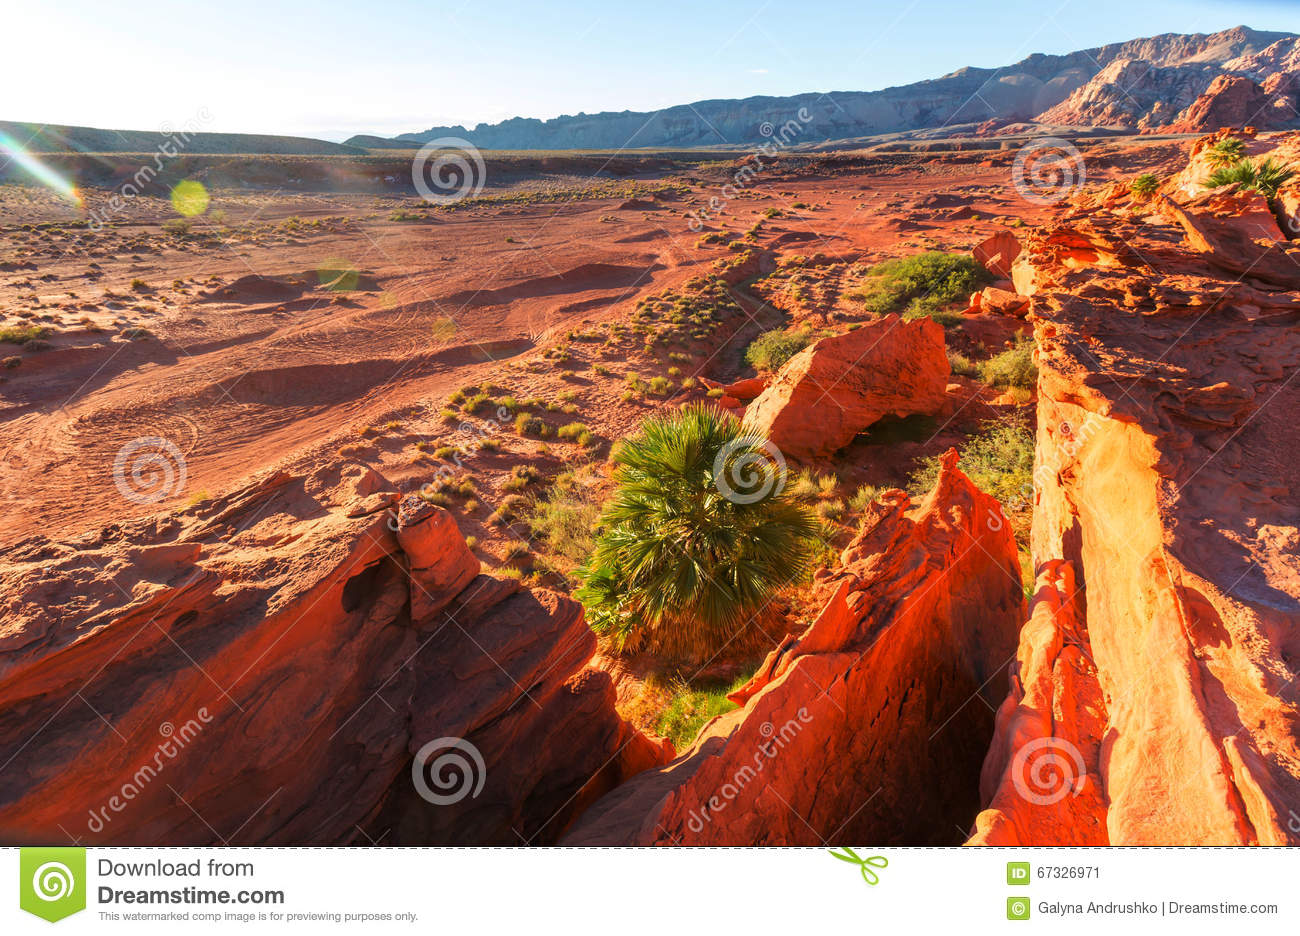 Mesquite (NV) United States  City new picture : Little Finland Stock Photo Image: 67326971